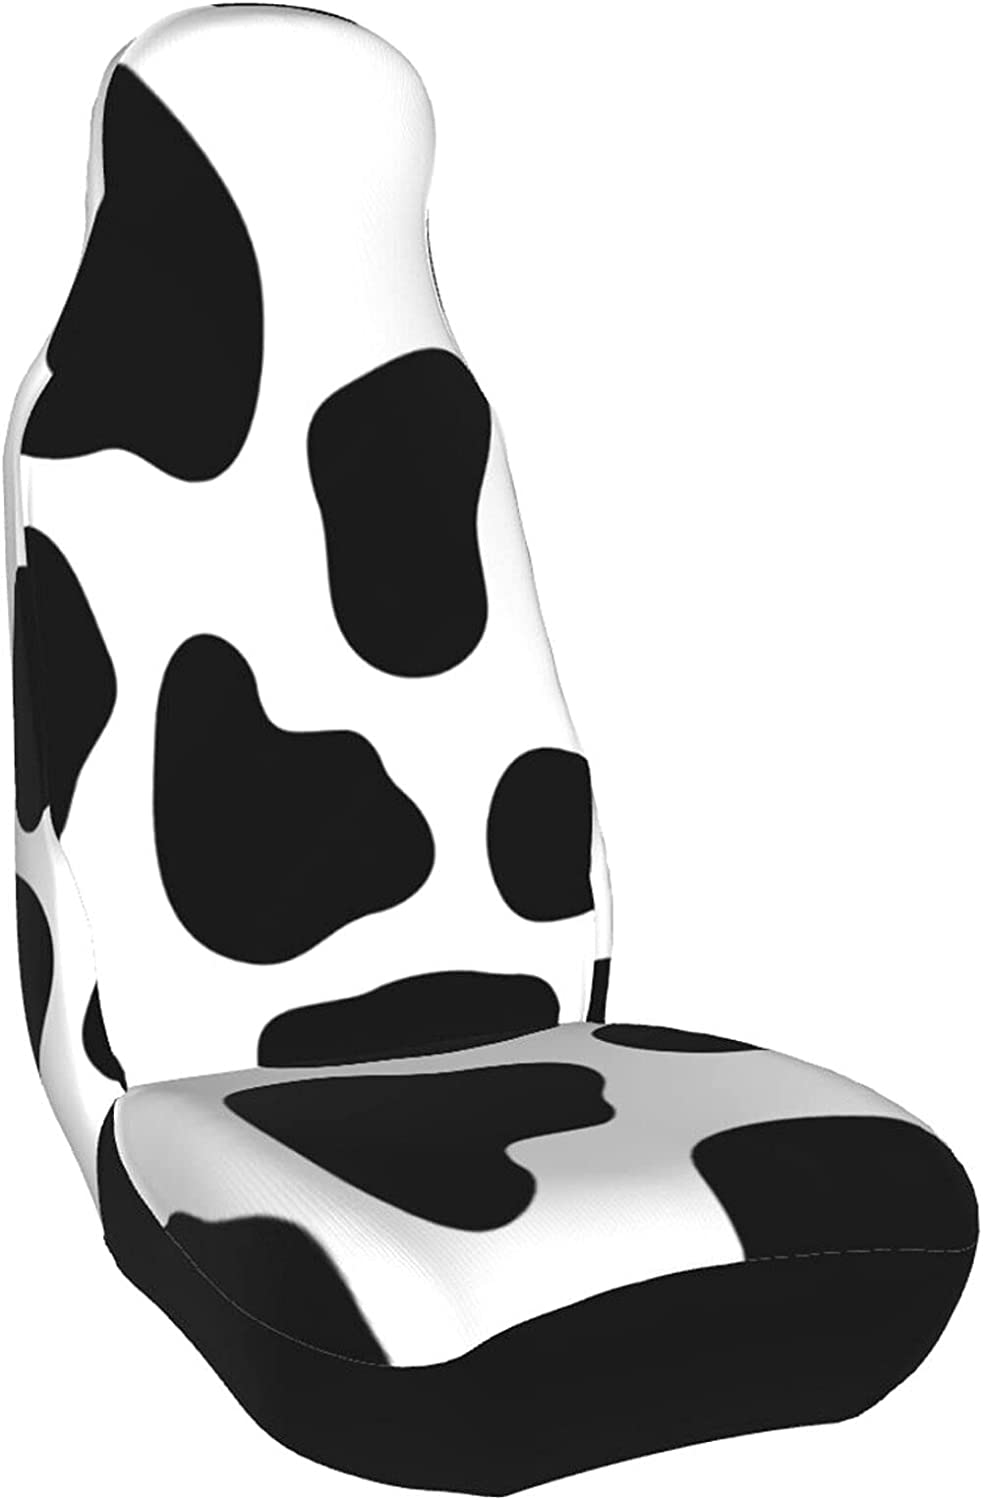 Universal Fit Car Cheap bargain Seat Cover Van Cow Ranking TOP11 Spot Truck for